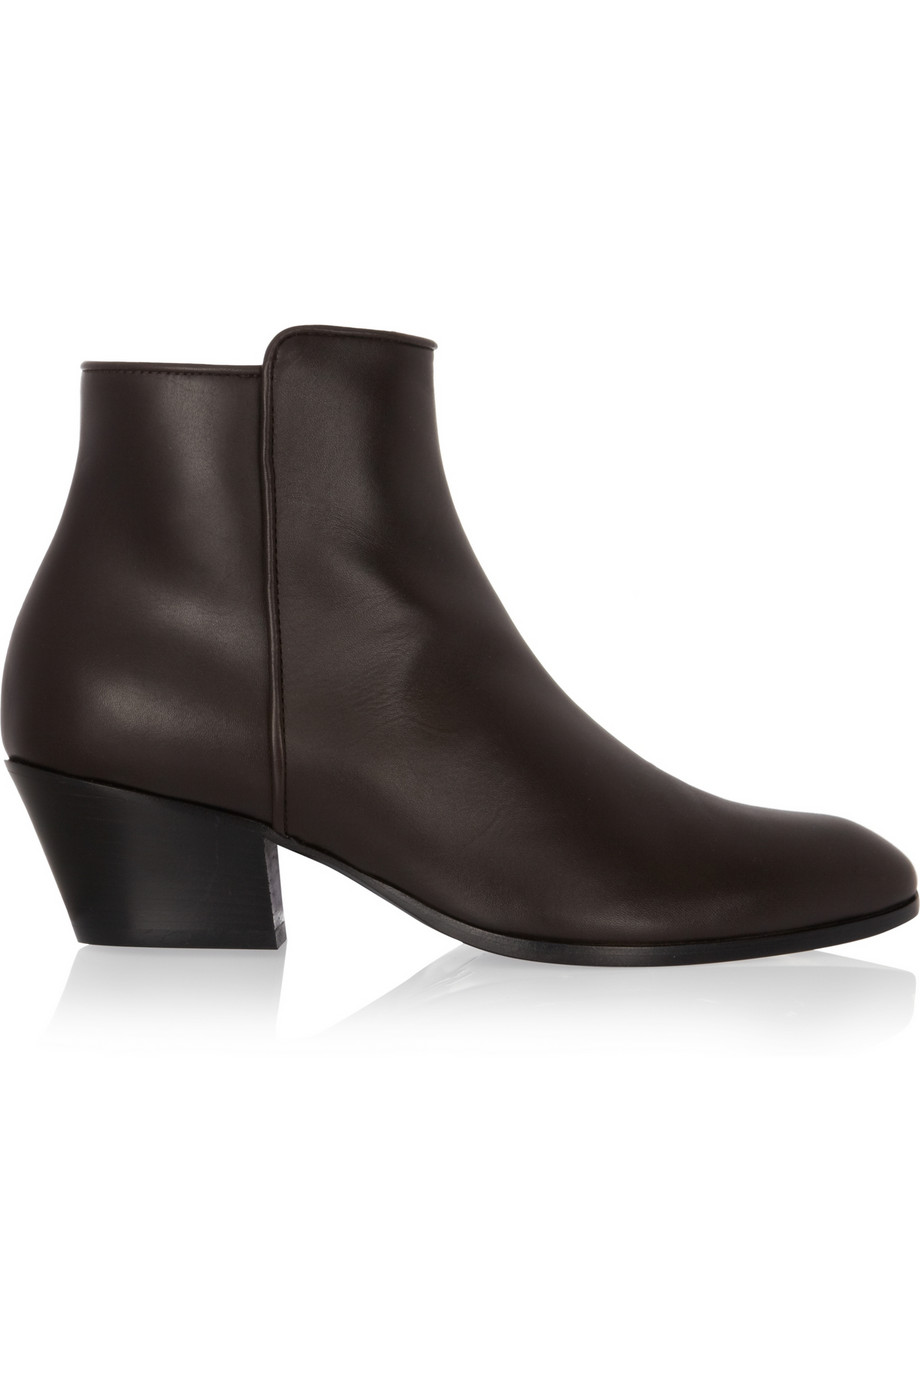 Lyst Giuseppe Zanotti Daddy Leather Ankle Boots In Brown